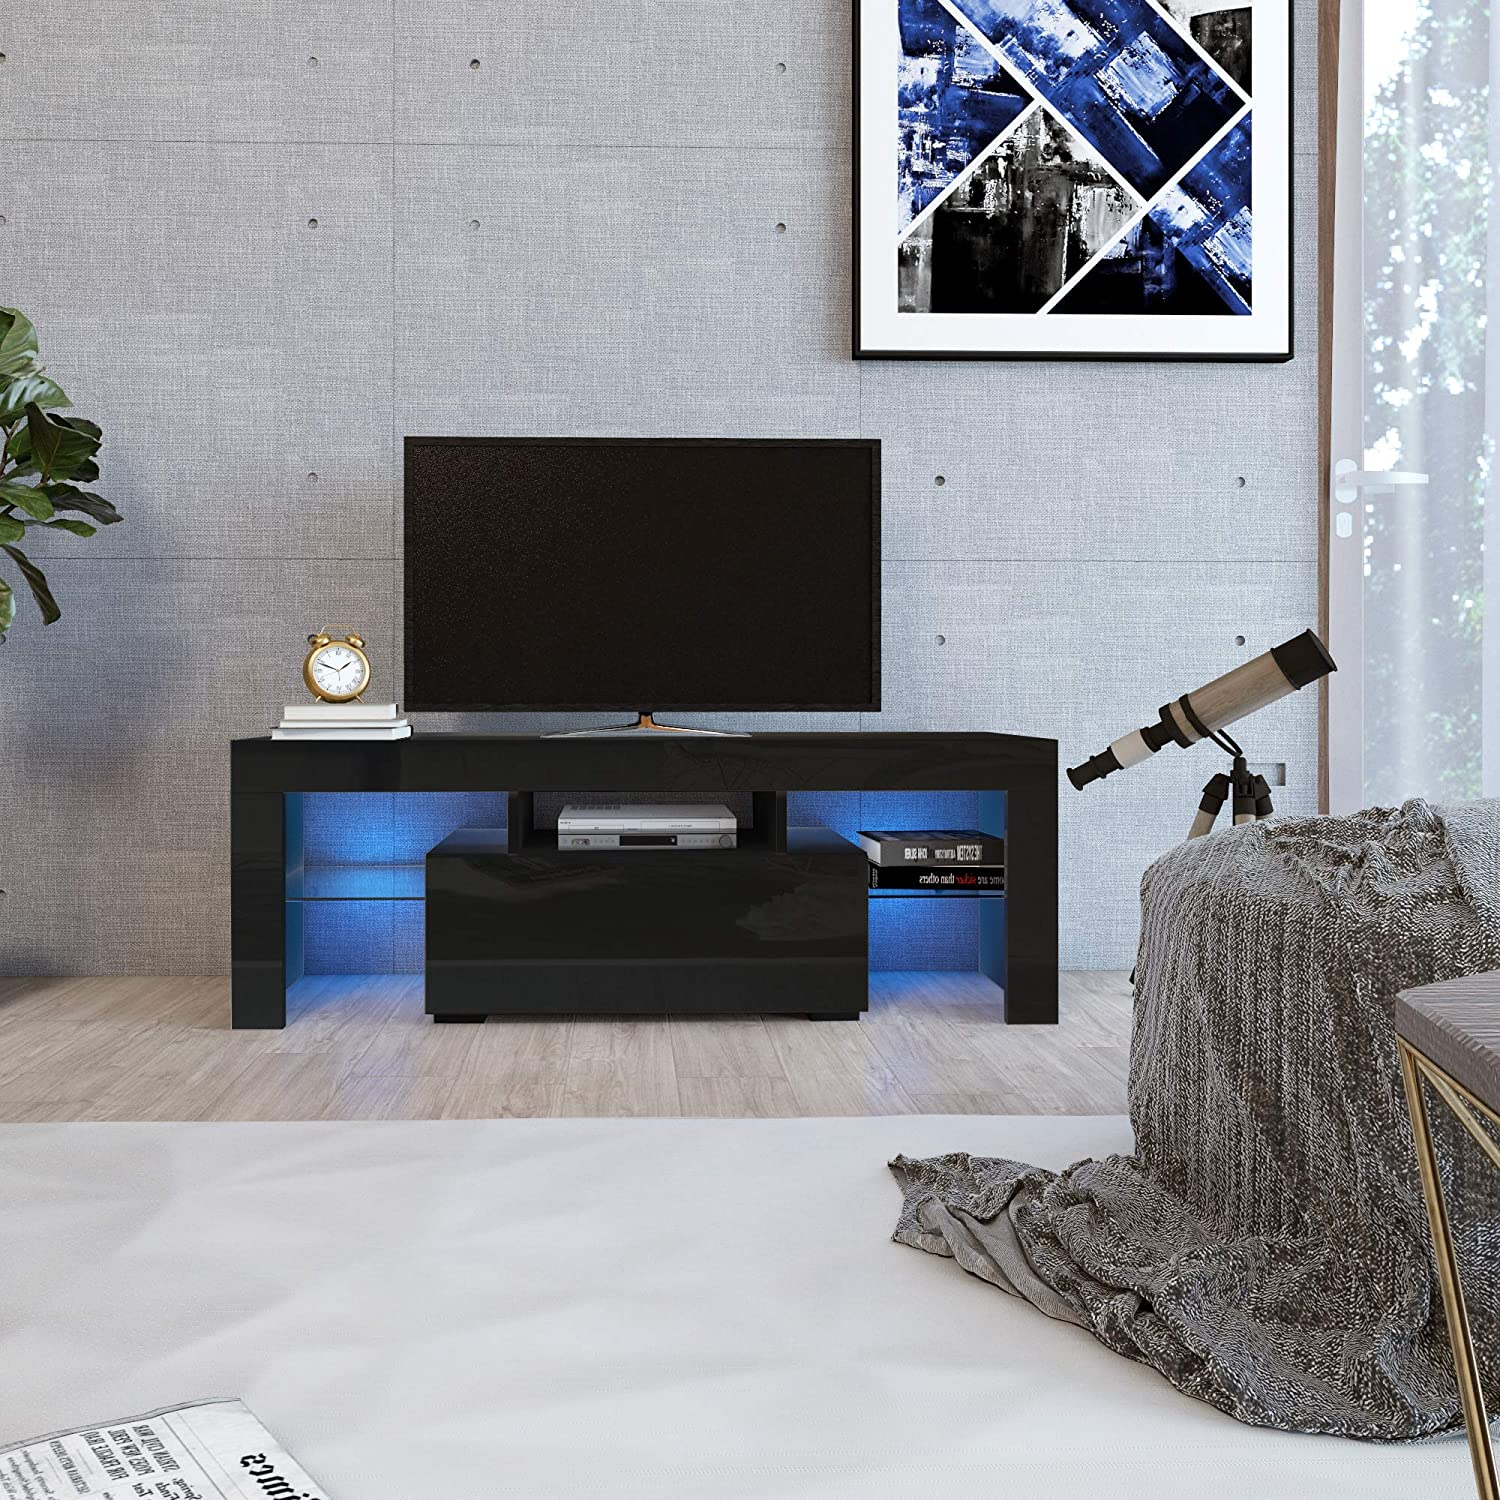 DMAITH TV Stand with LED Lights, 1 Drawer and Open Shelves High Gloss Entertainment Center Media Console Table Storage Desk for Up to 60 Inch TV, Black (002B)